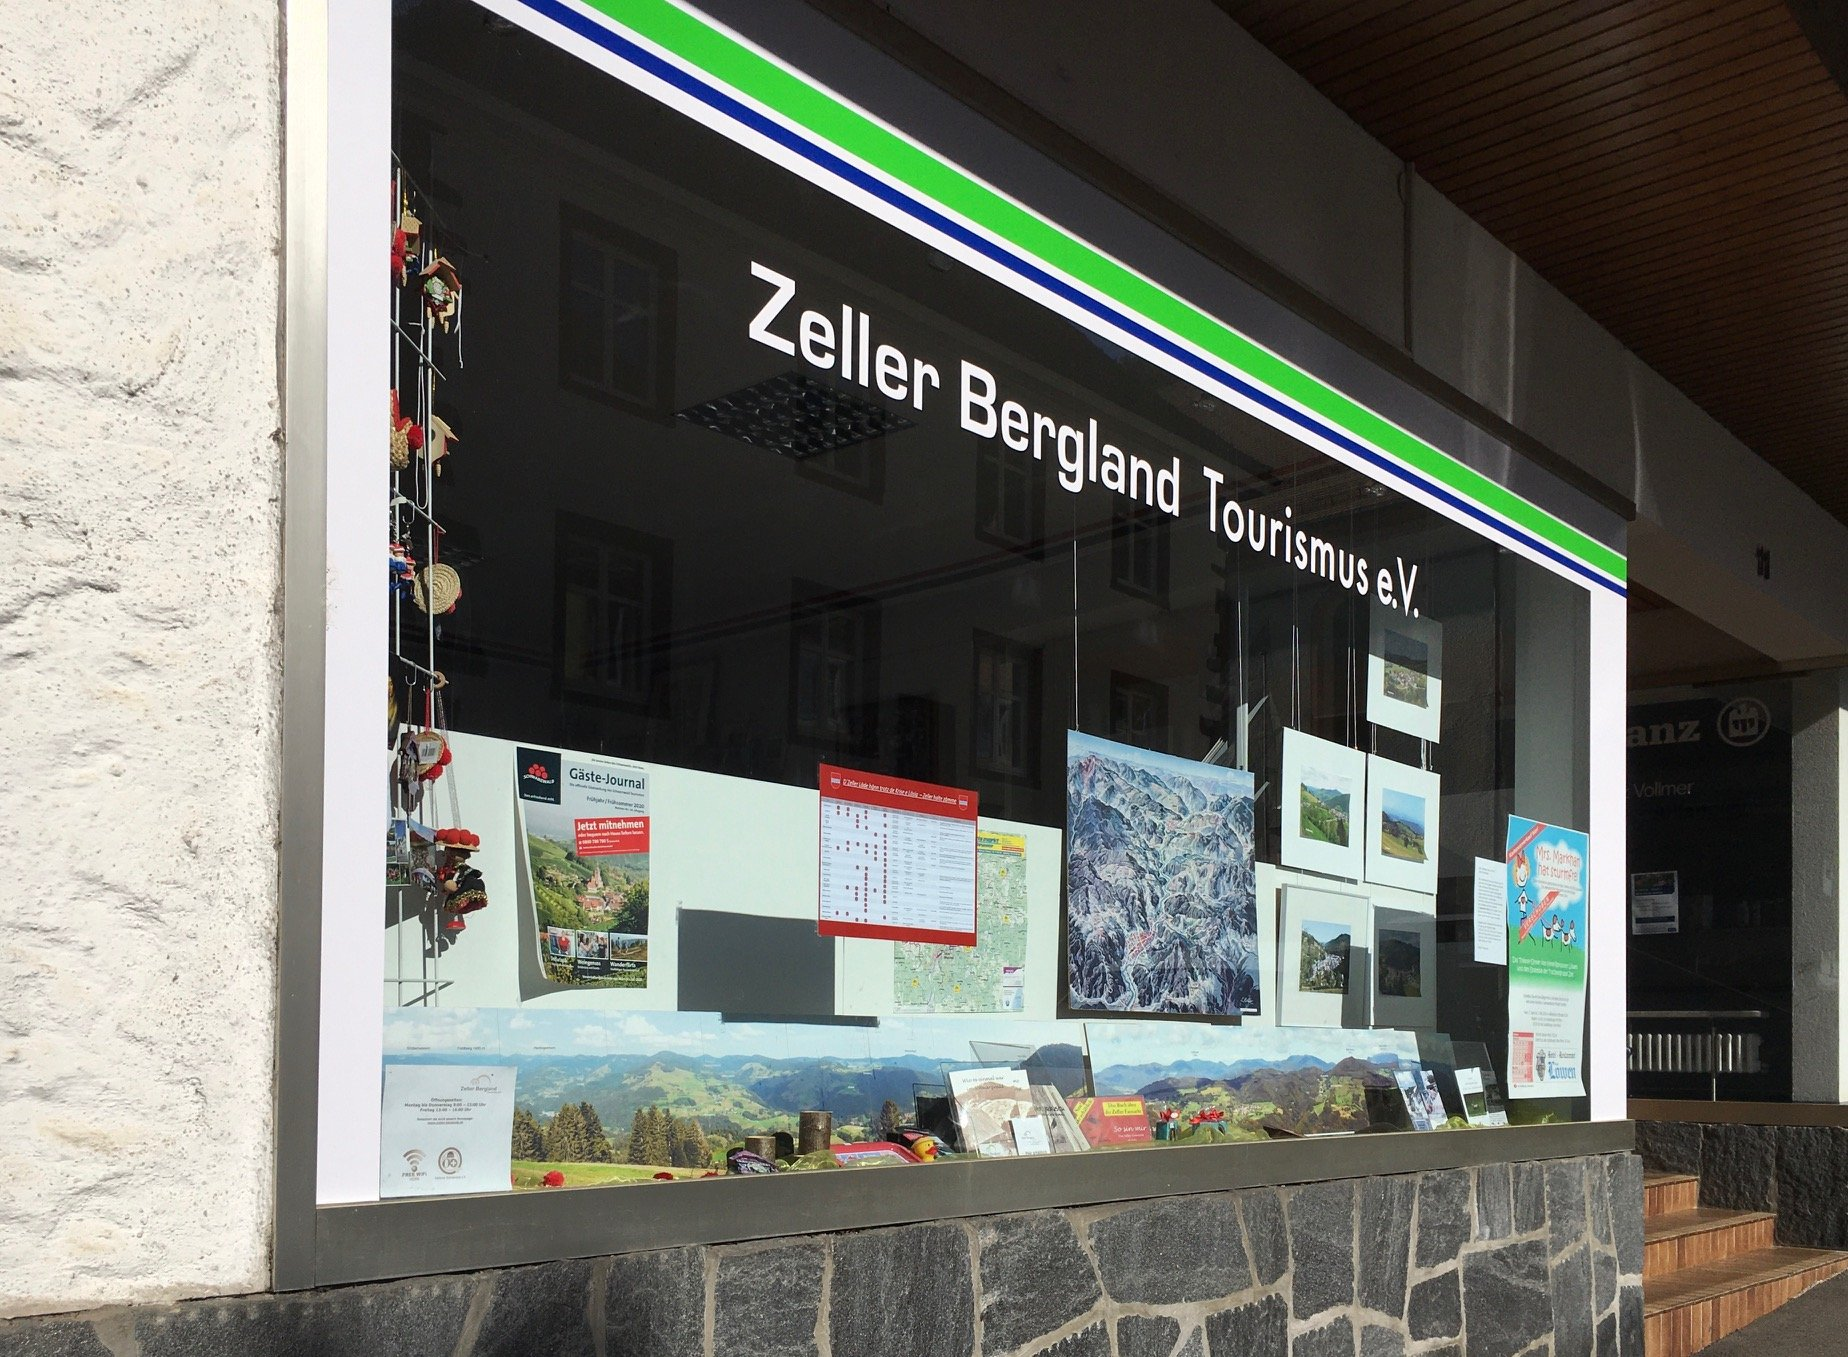 Touristinformation Zeller Bergland in Zell im Wiesental